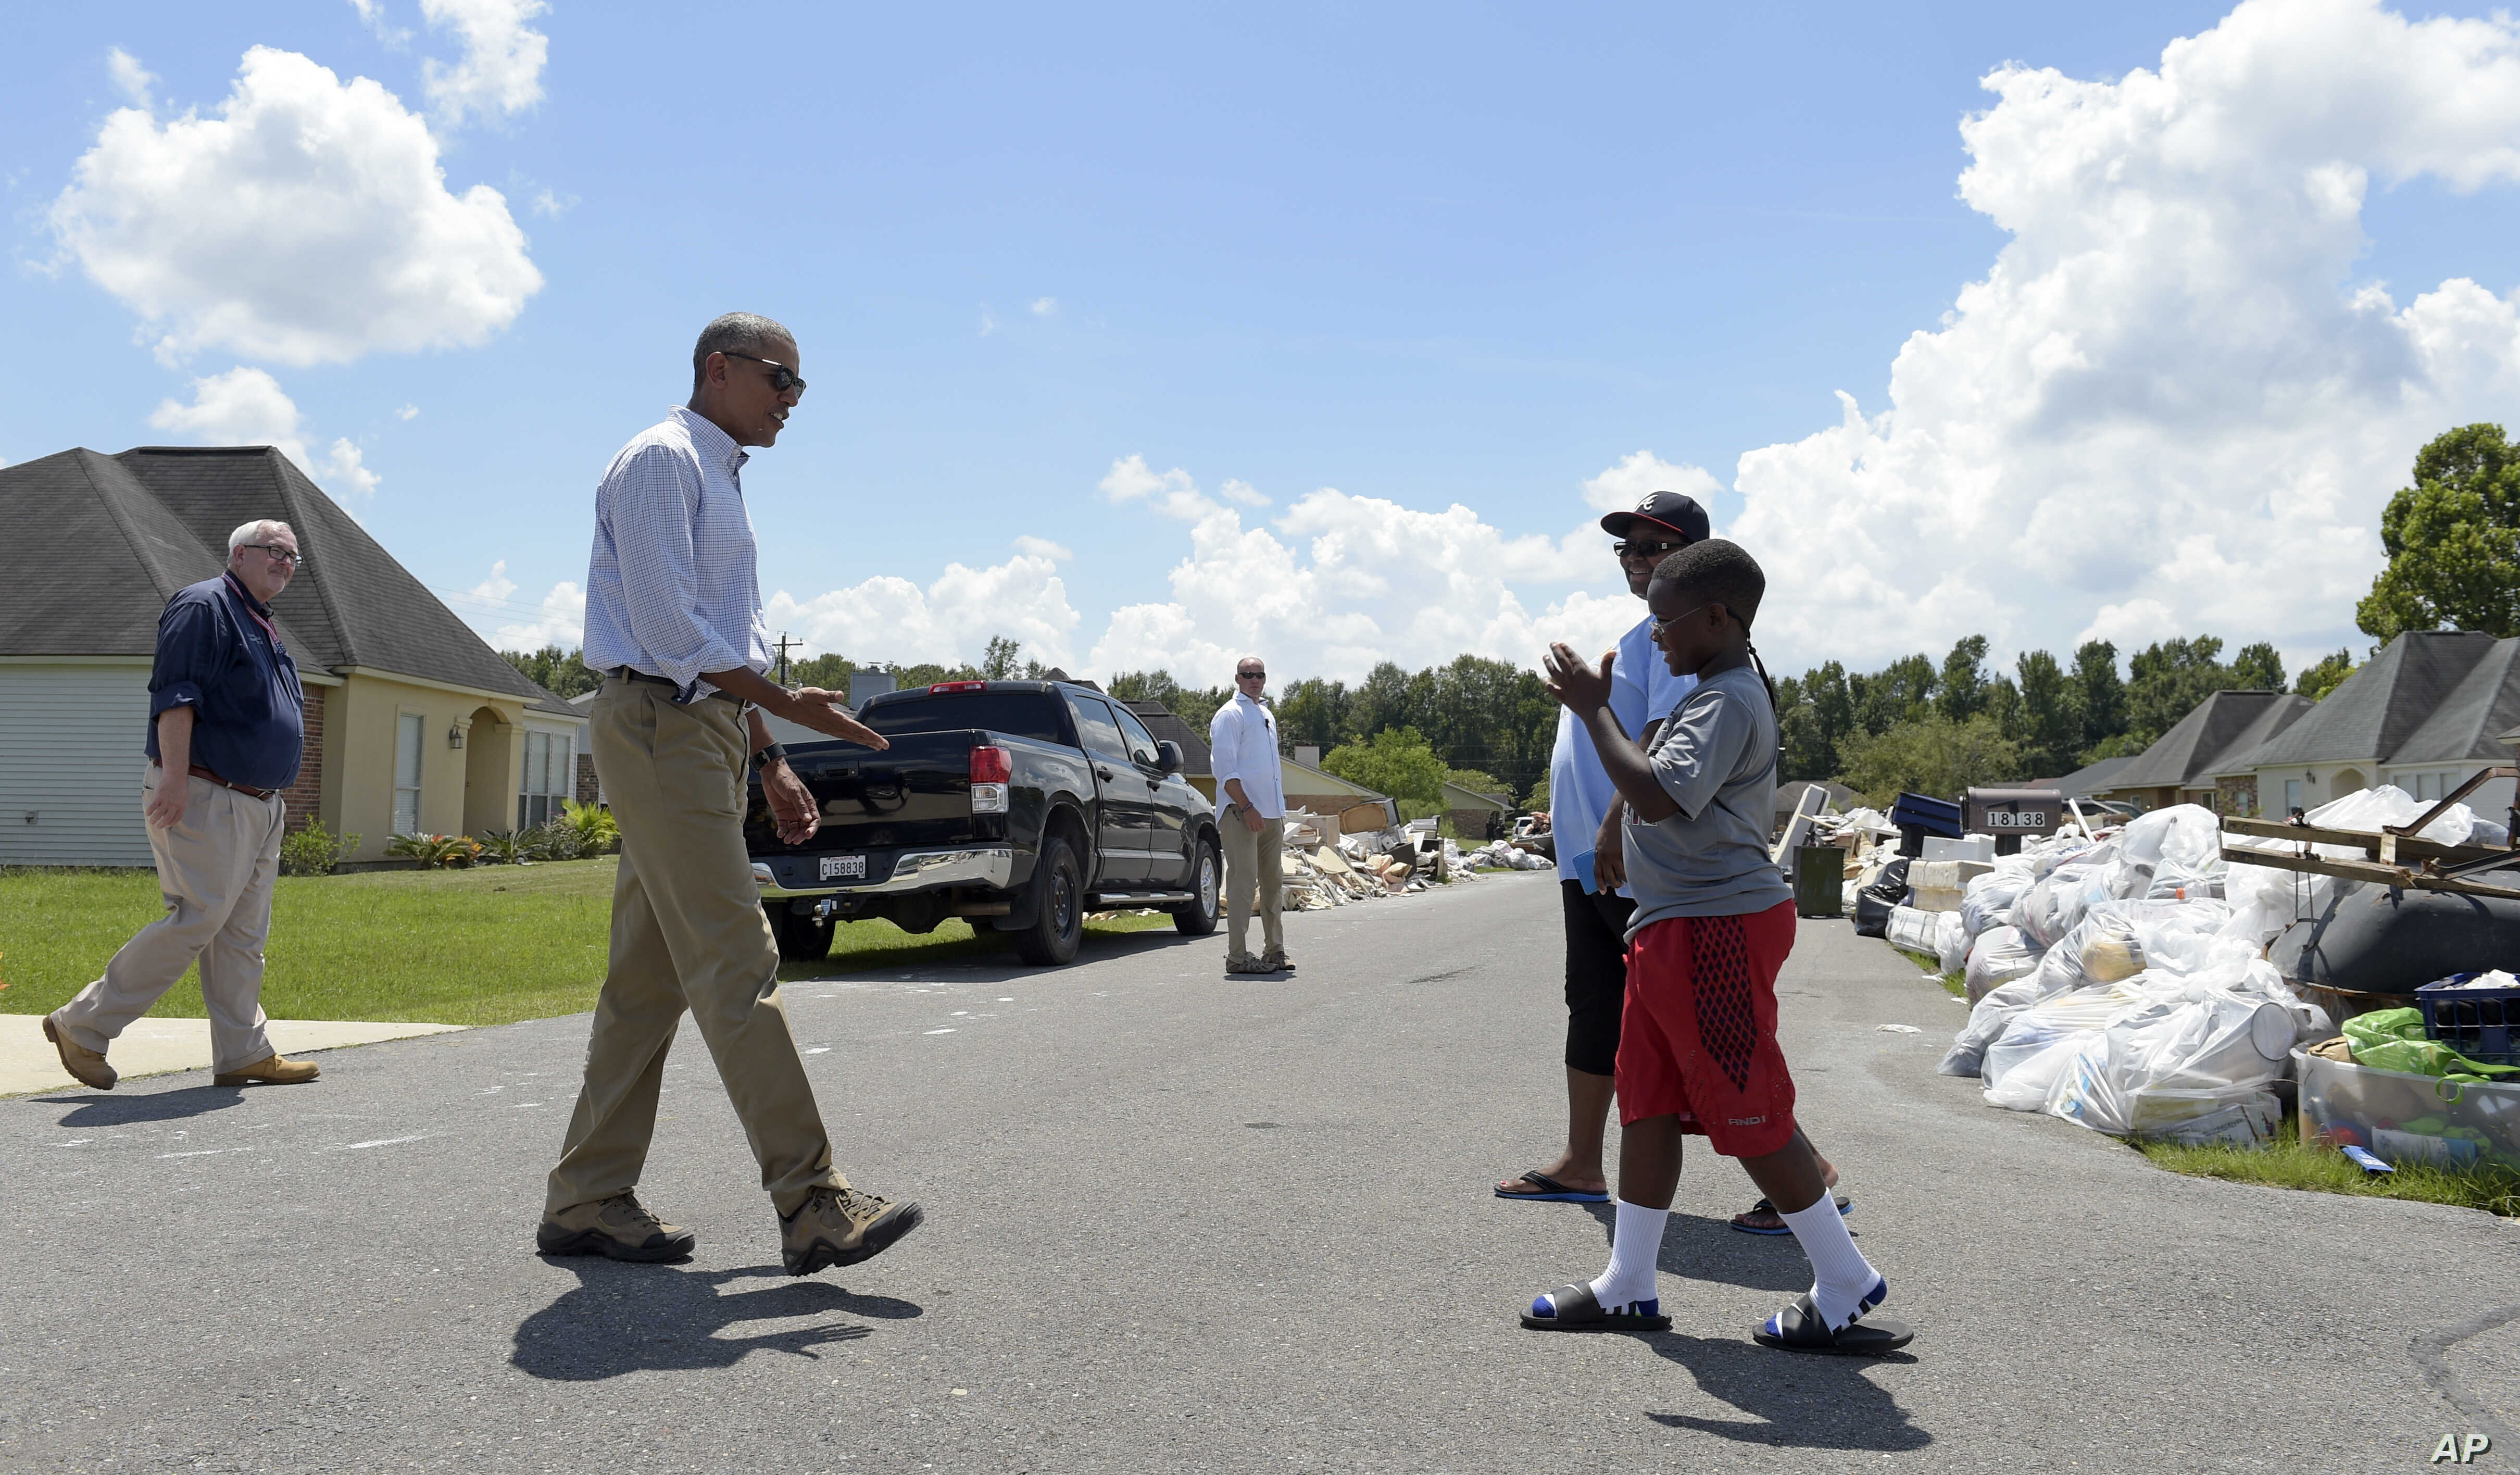 President Barack Obama walks to greet a family to tour their flood-damaged home in the Castle Place neighborhood of Baton Rouge, La., Aug. 23, 2016.